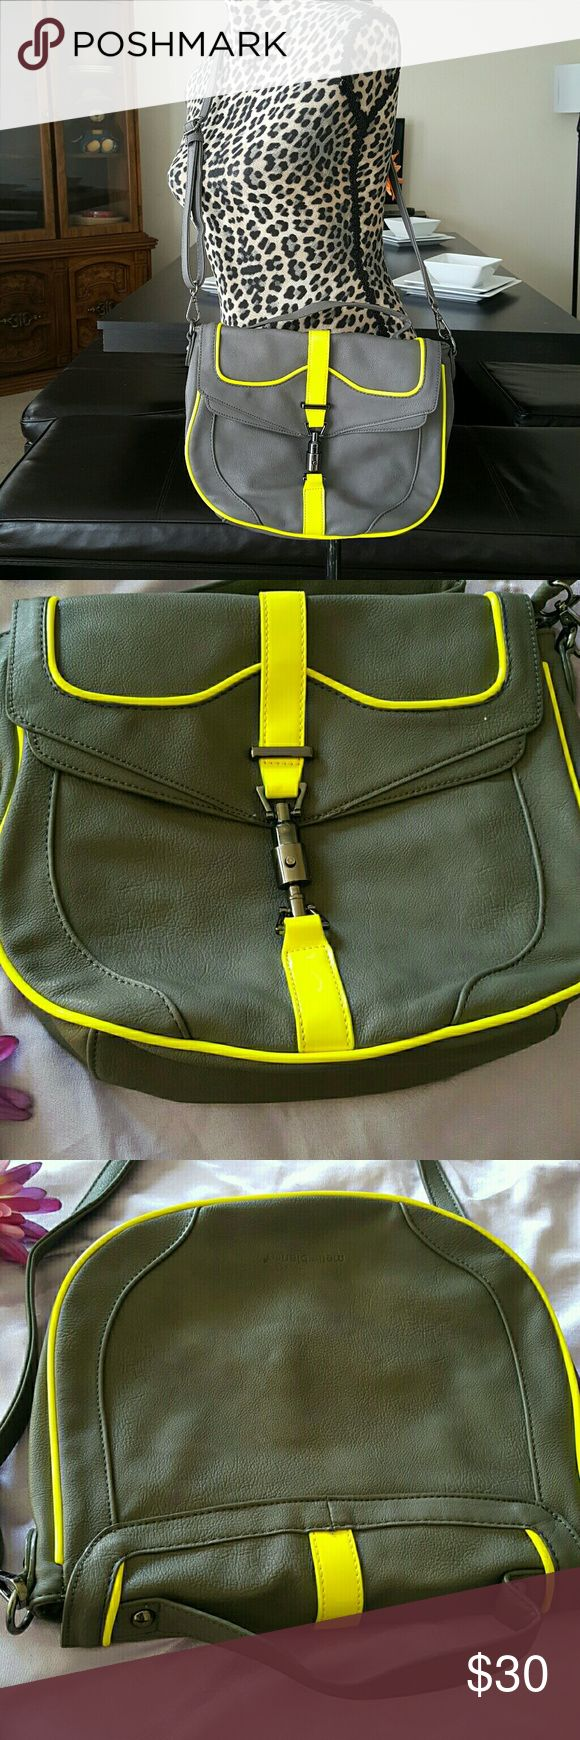 "Melie Bianco Crossbody Bag Good Condition shows minor wear see photos  Color Lime Green and Gray Neon Trim Patent neon trim fires up a top-handle messenger bag furnished with an optional strap. Push-lock flap with zip closure. Interior zip, wall and cell phone pockets. Satin lining. Polyurethane. By Melie Bianco; imported. Dimensions: 11W x 10H x 2 1/2 D Strap drop: 3"". Crossbody strap drop: 11 1/2"" - 23 1/2"". Melie Bianco Bags Crossbody Bags"